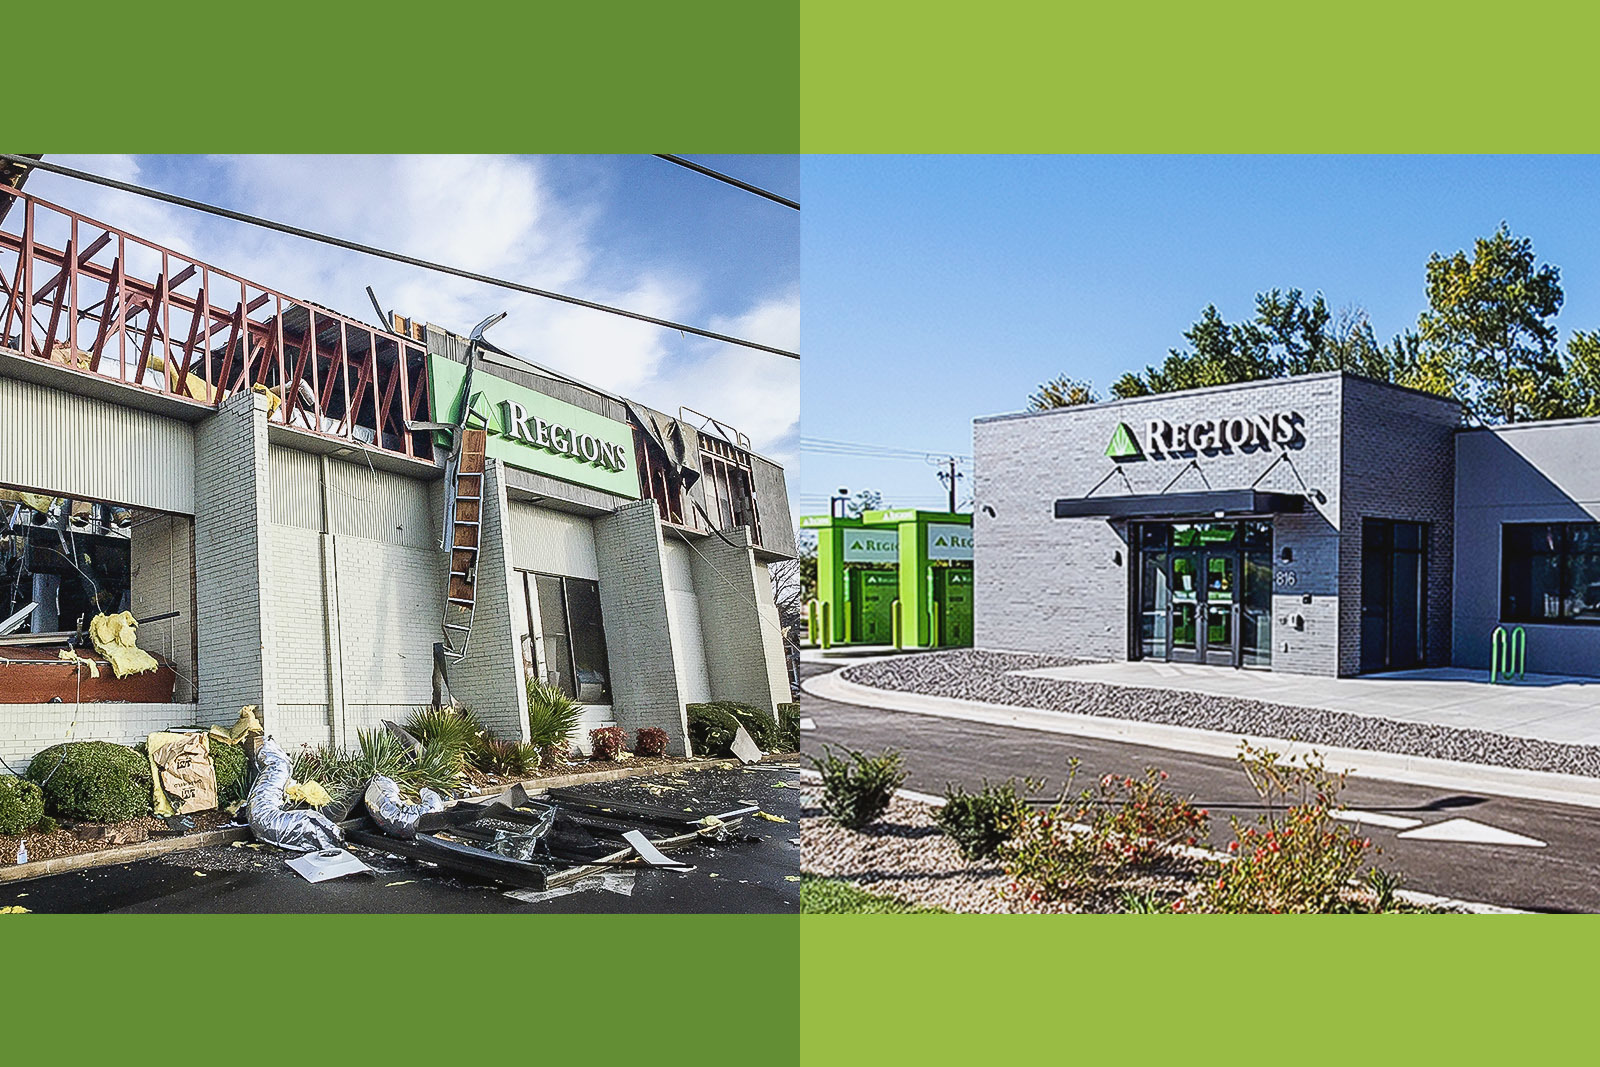 Regions is a longtime member of the North Nashville community. The bank's North Nashville branch (left) was destroyed in the March 2020 tornado, and the bank is finalizing plans for a new North Nashville branch while serving customers from a modular facility on-site.